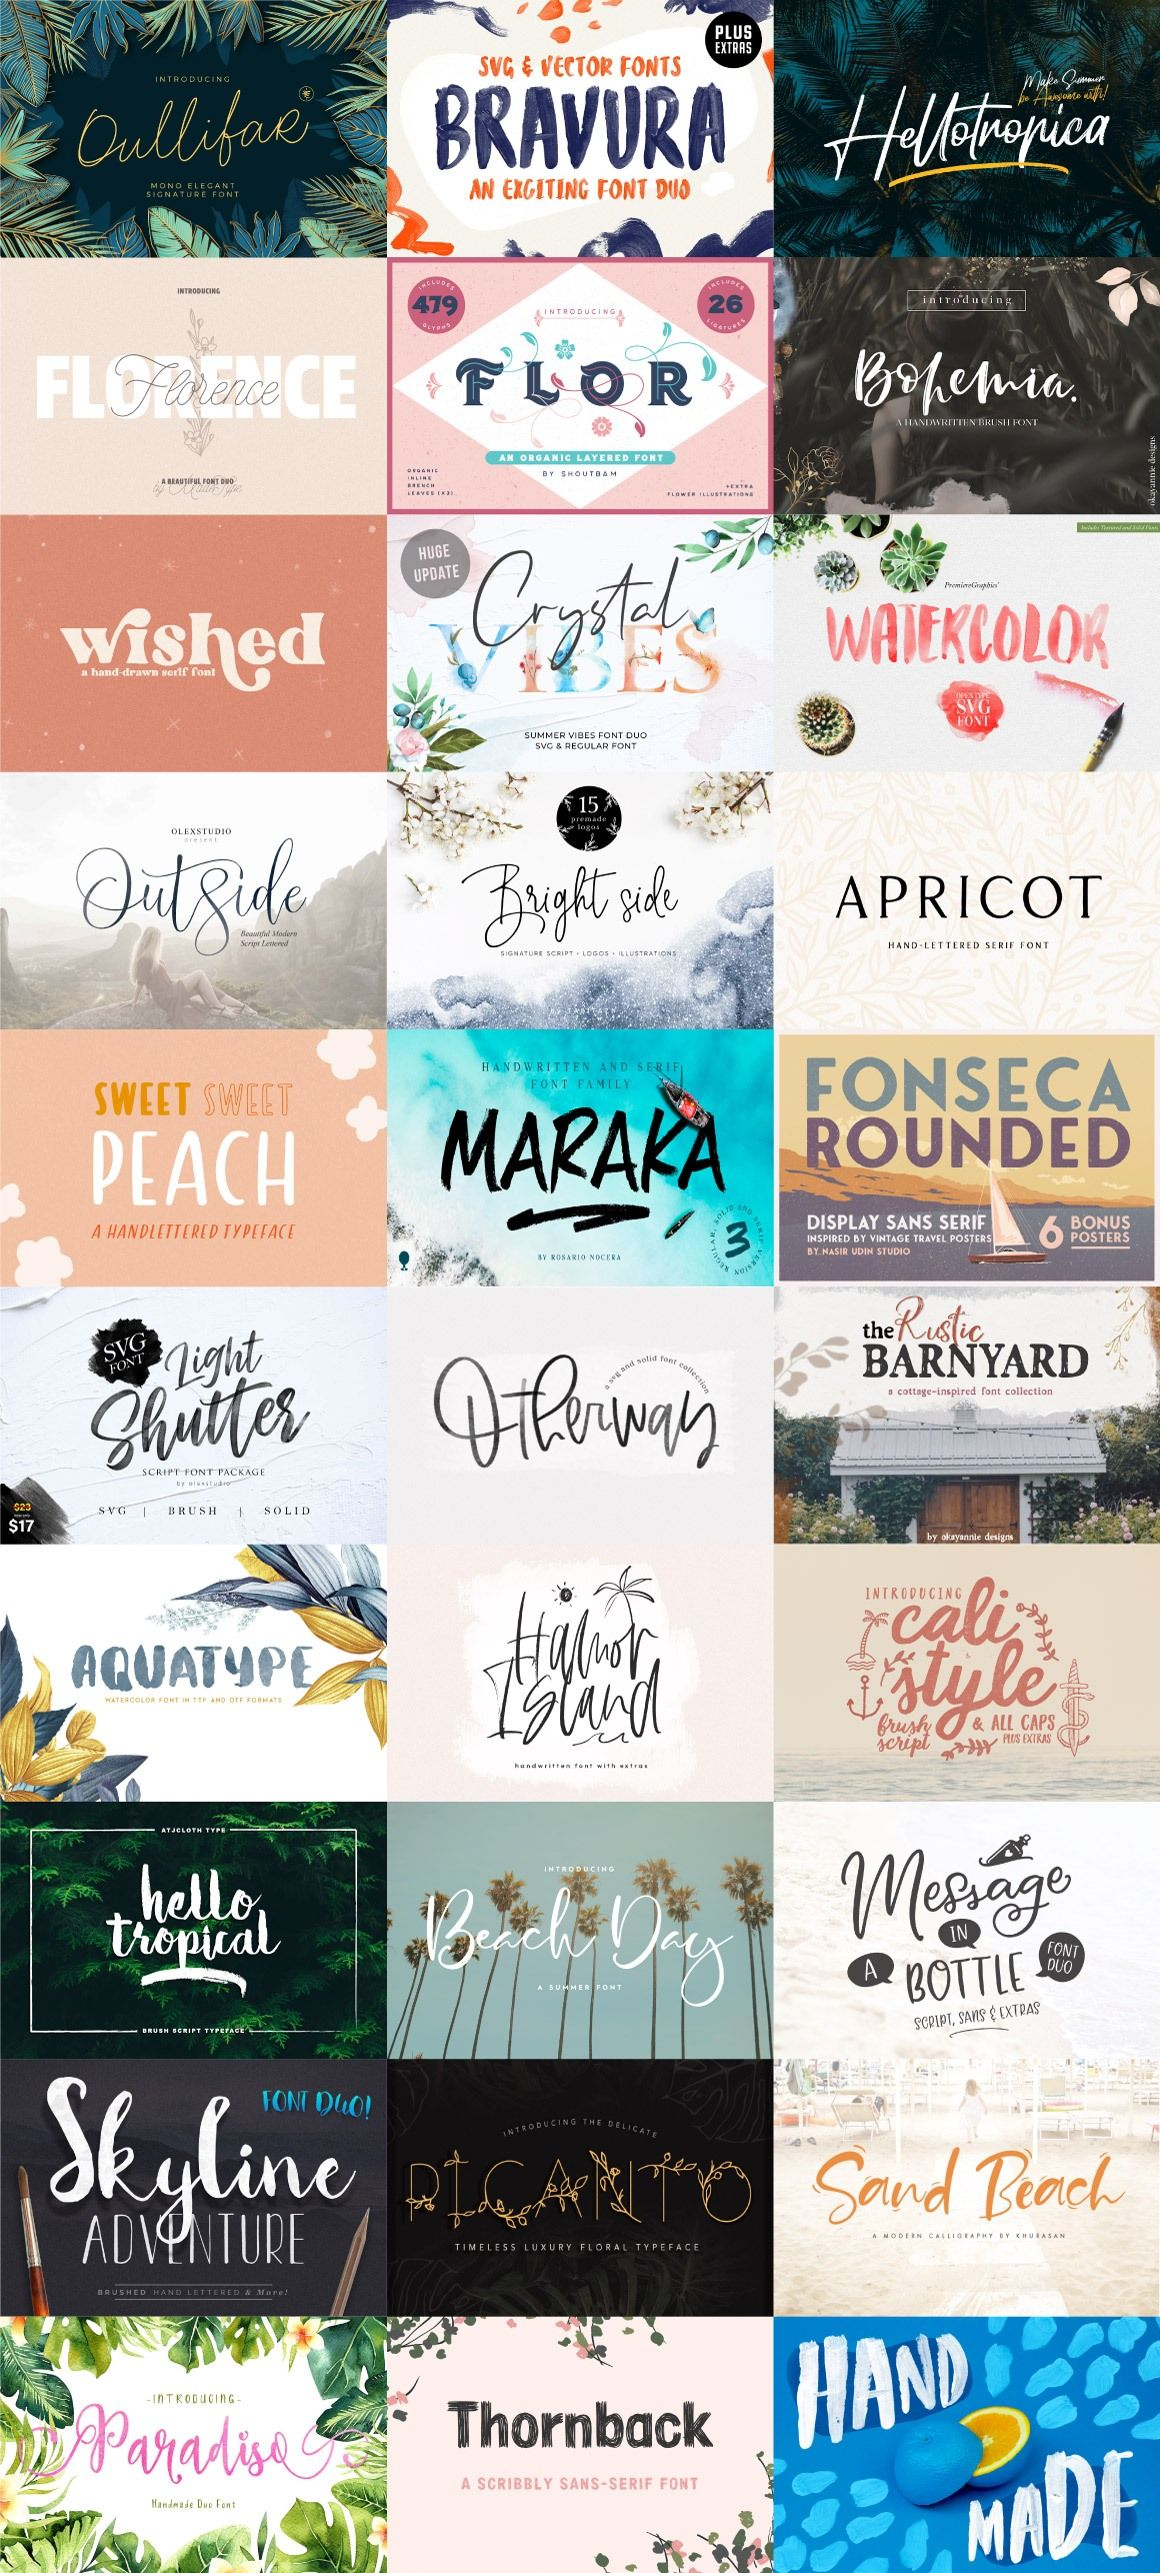 SFFB Products.jpg Font bundles, Cool fonts, Summer fun